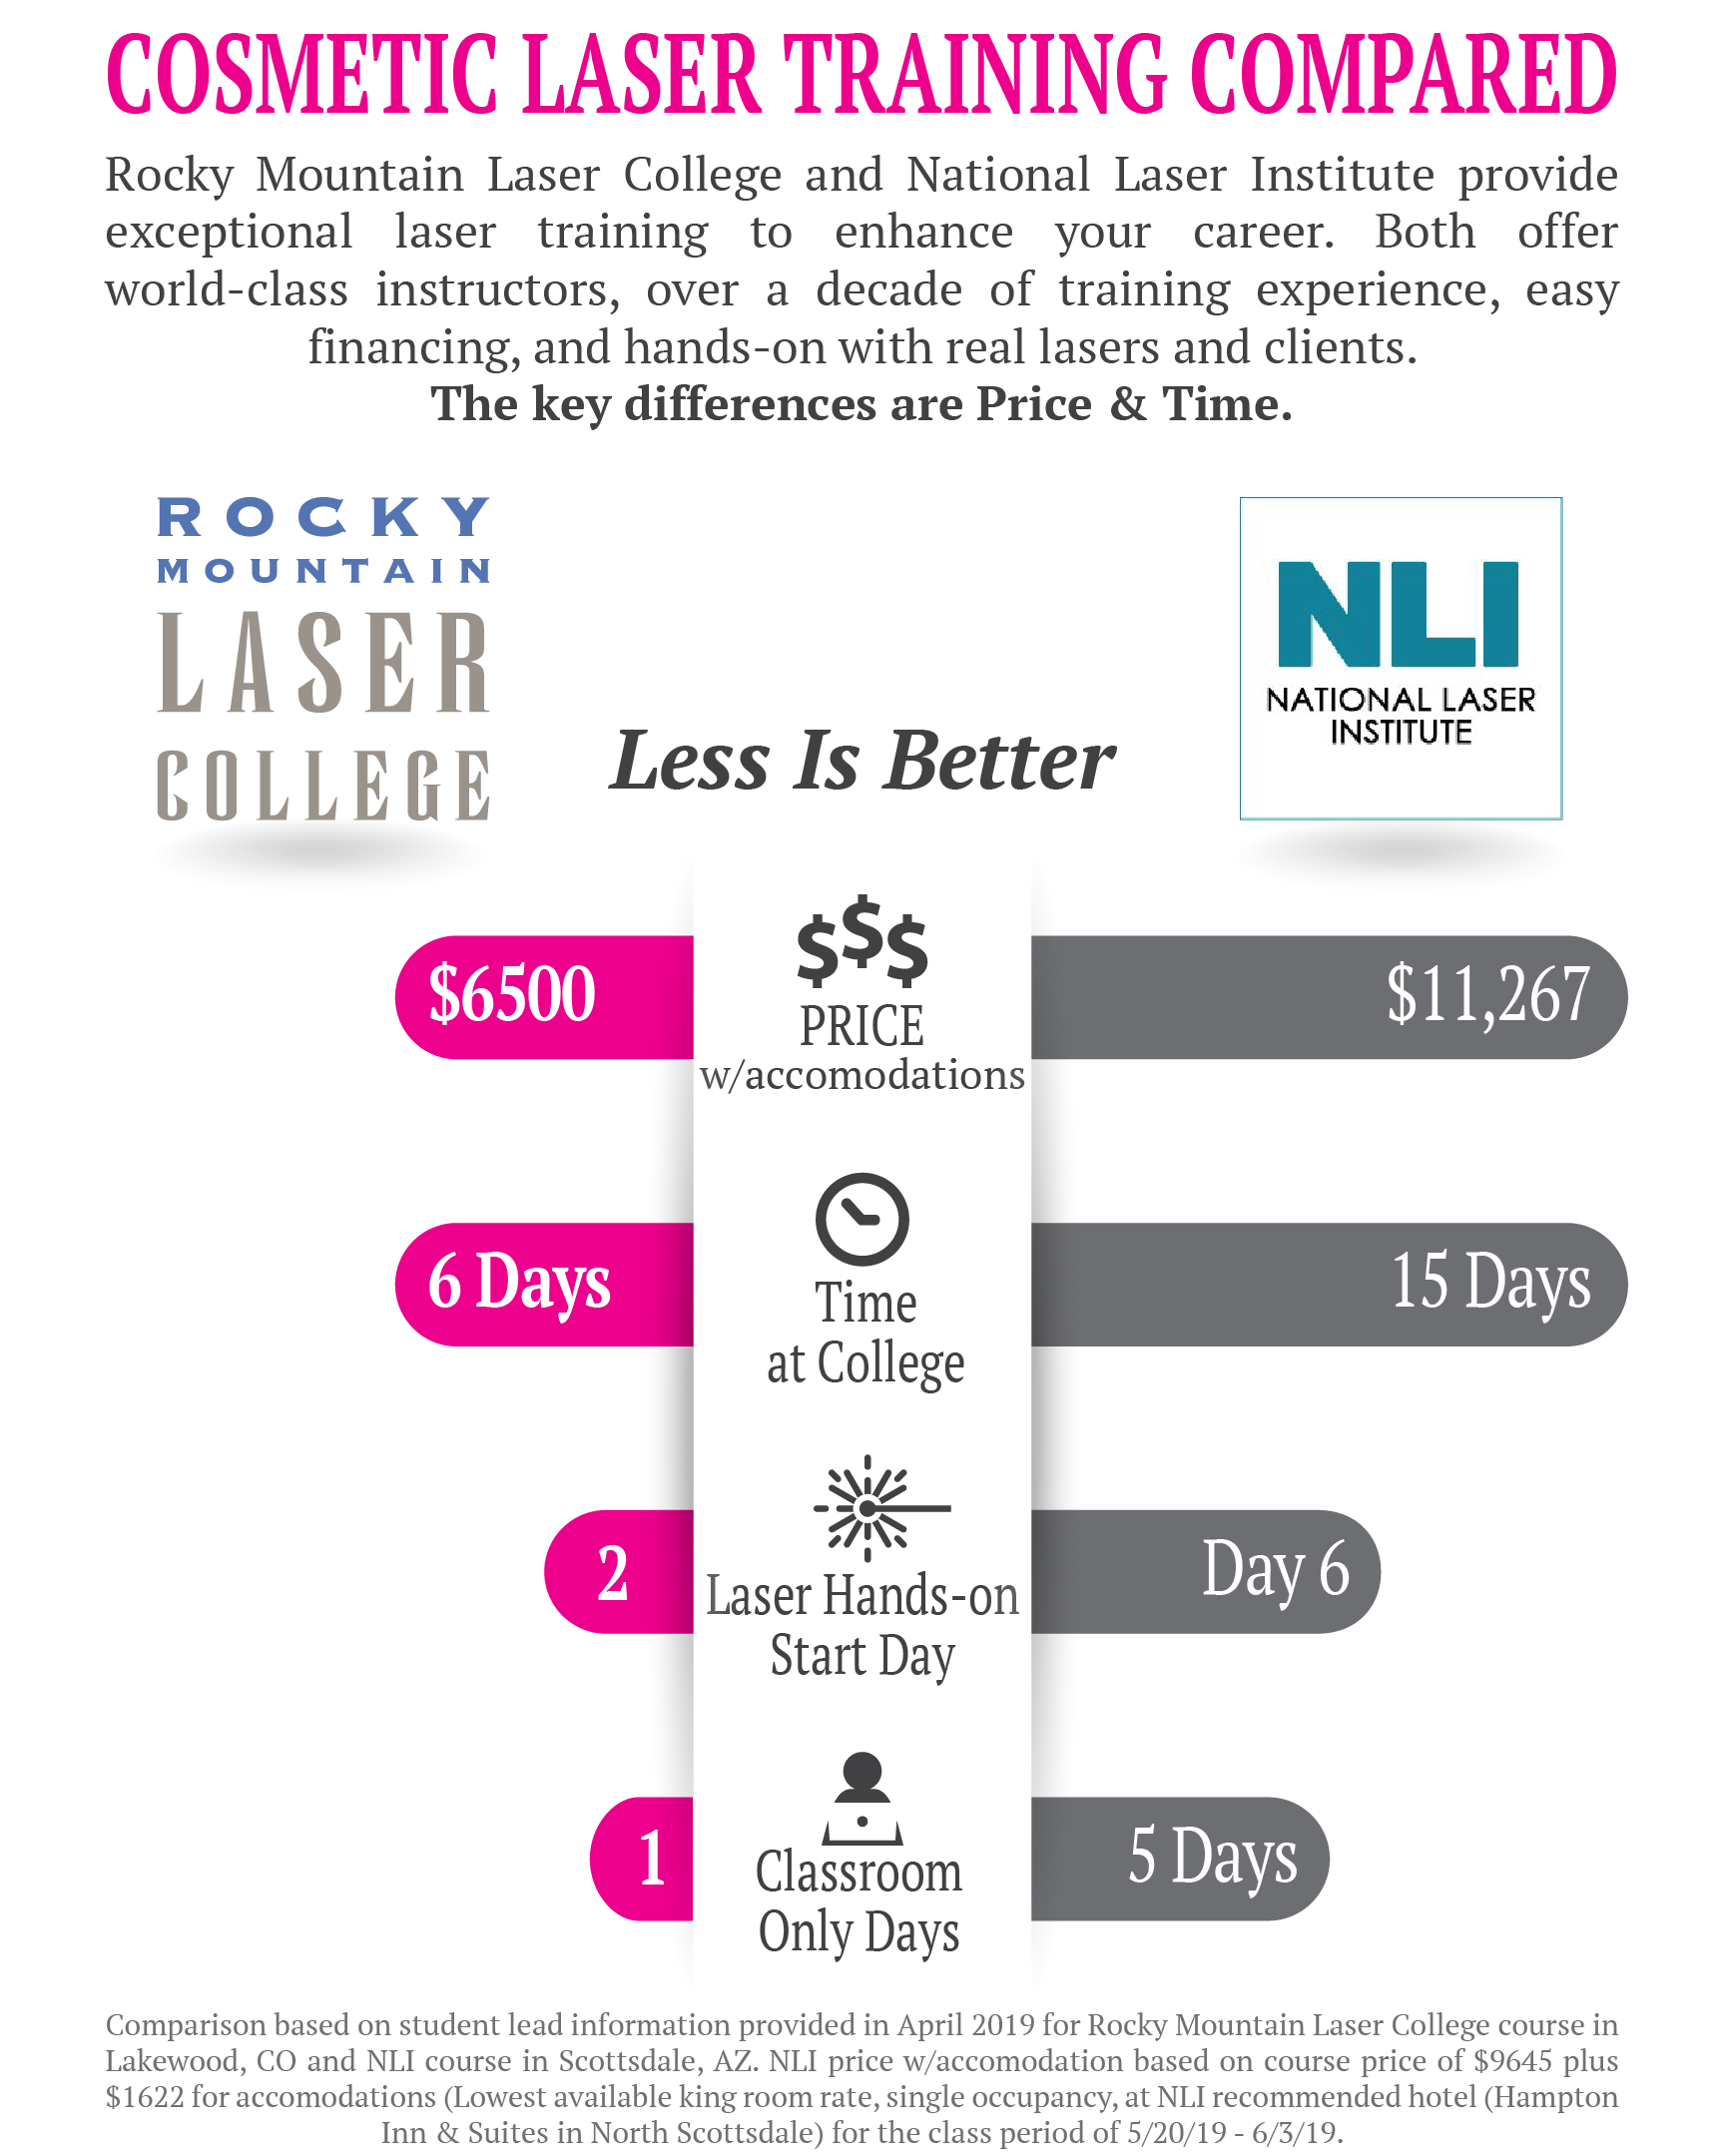 Laser training cost comparison showing the difference in cosmetic laser training costs at Rocky Mountain Laser College and National Laser Institute